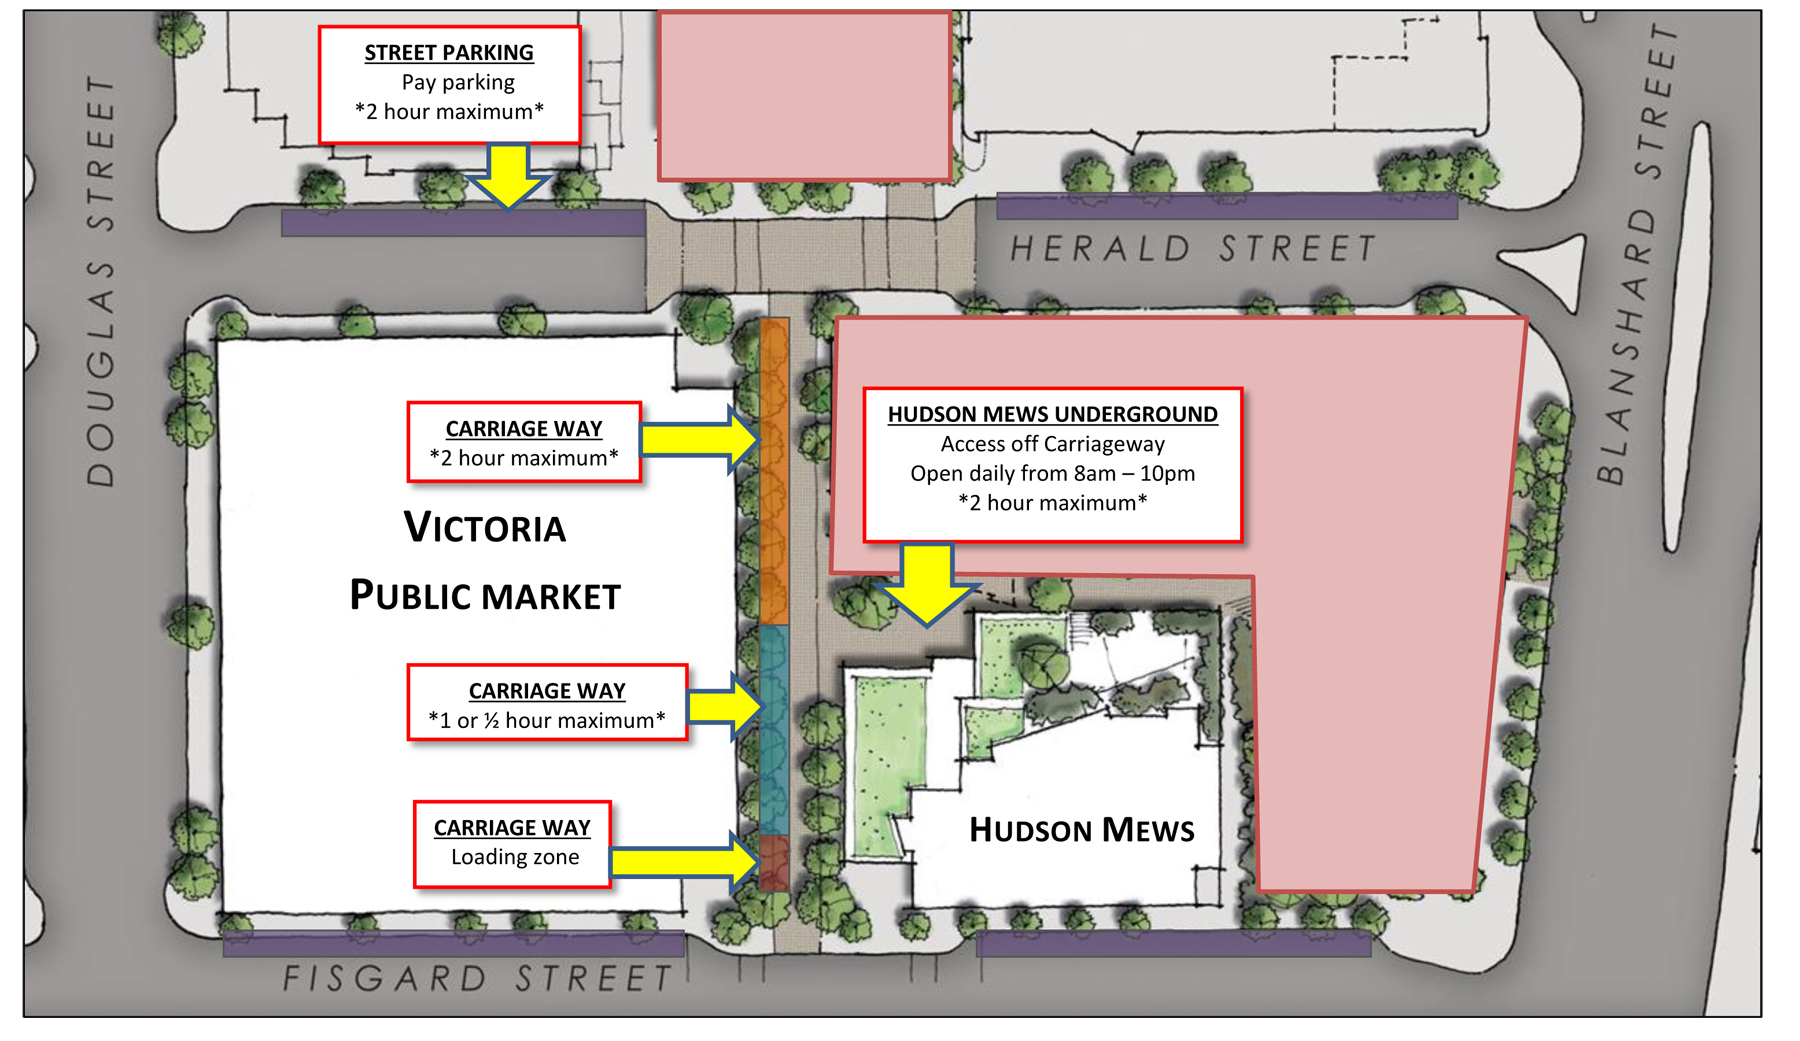 Victoria parking options